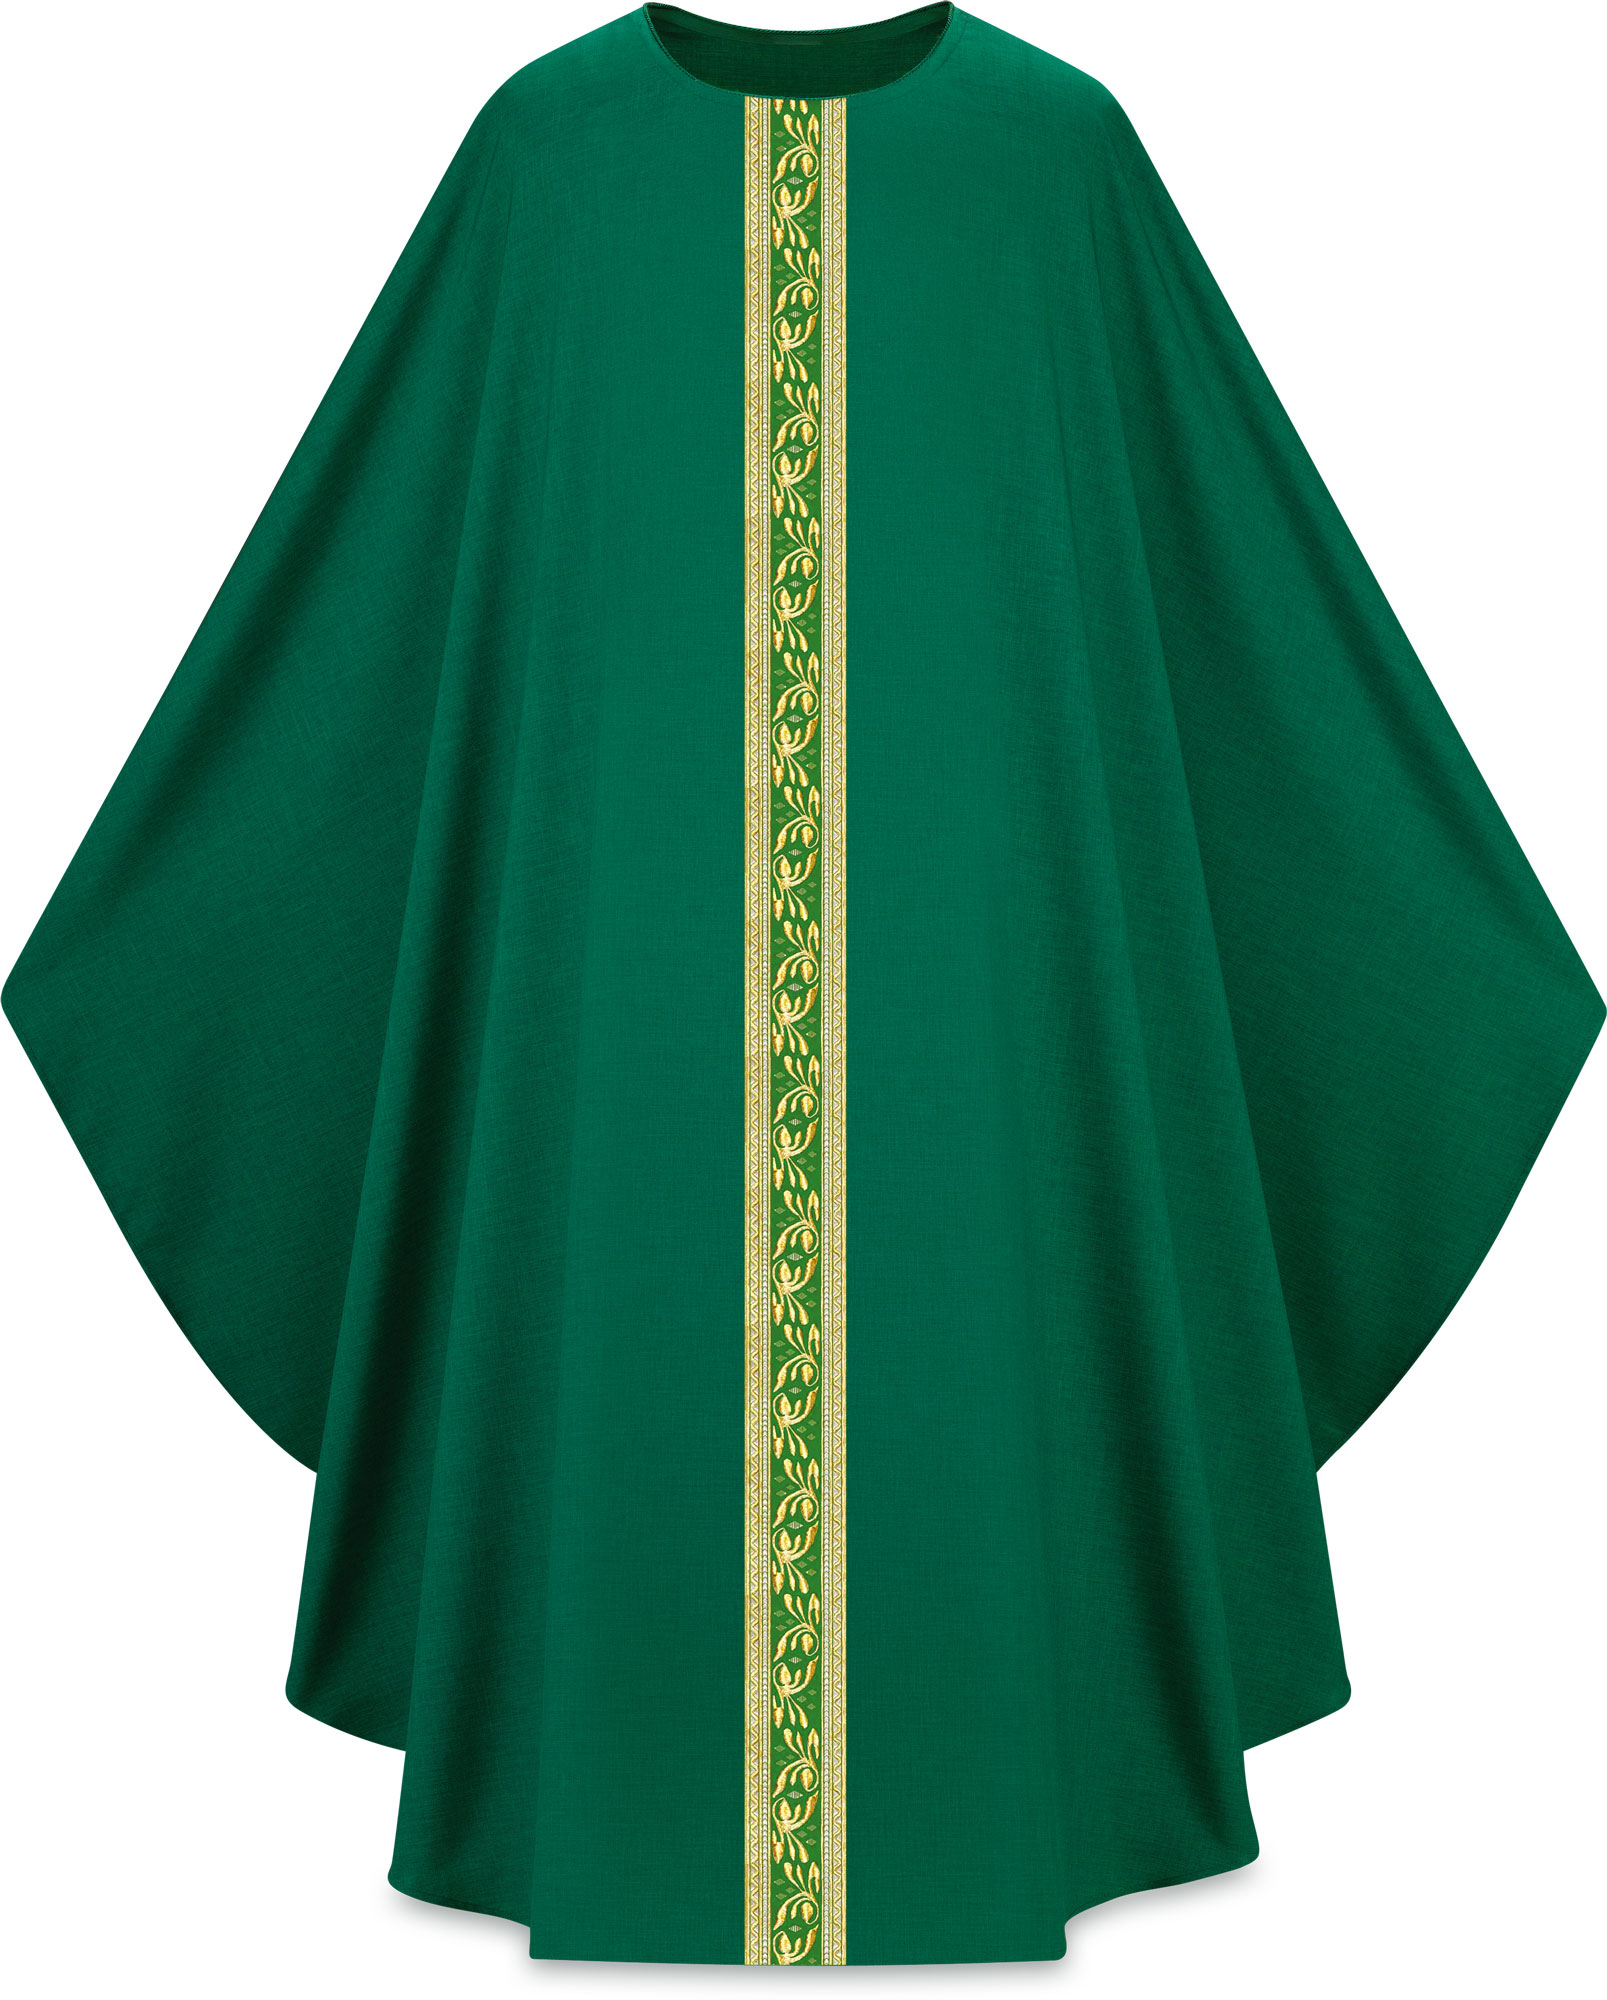 Chasuble - 5184 Green